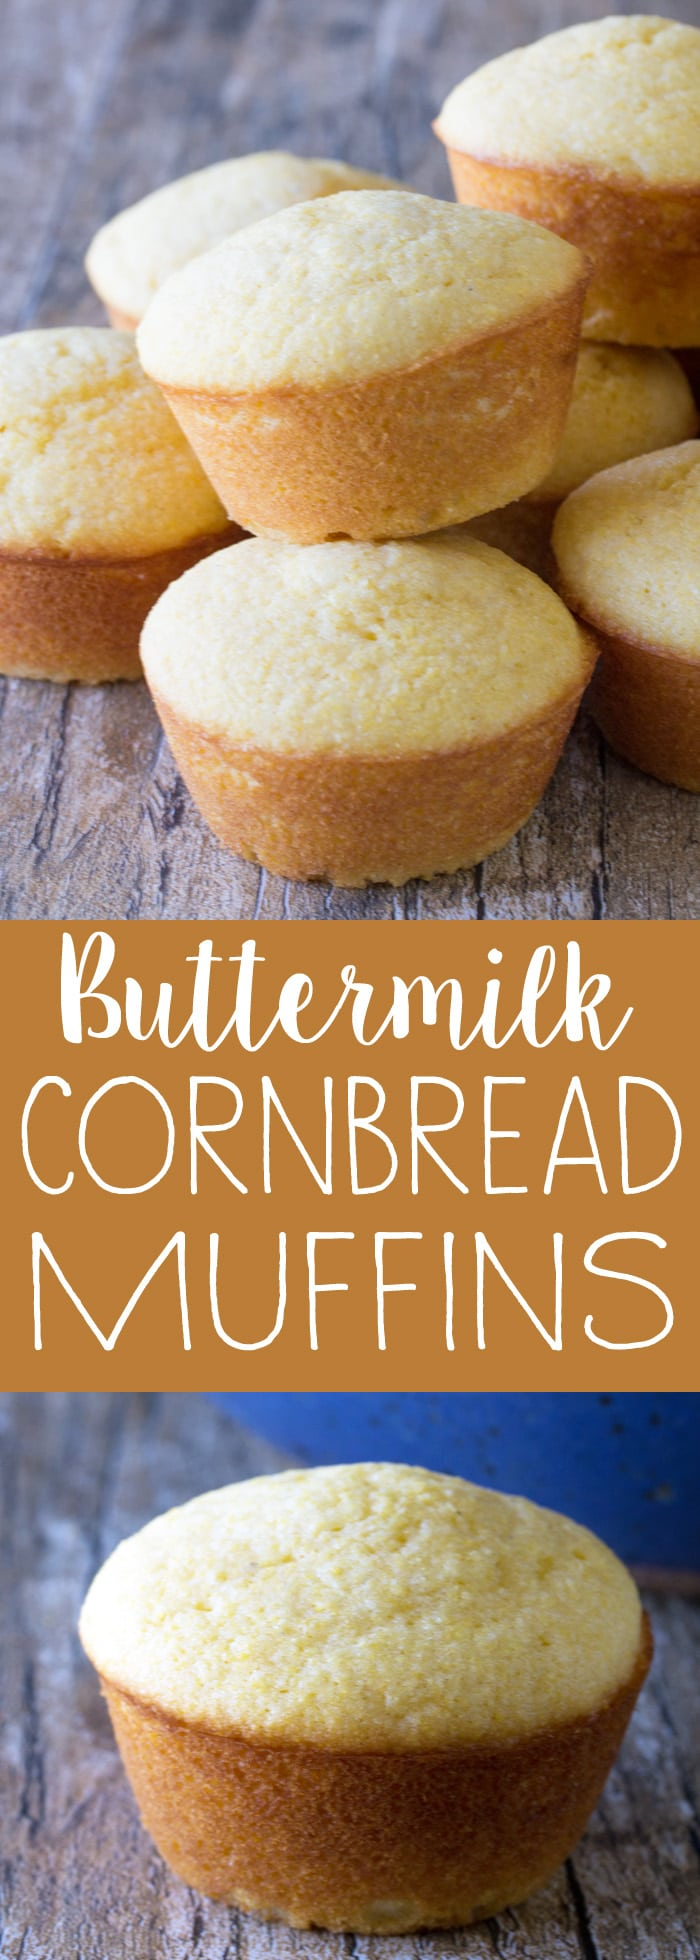 Sweet, buttermilk cornbread muffins that are super easy to make and super tasty too. It doesn't get any easier!